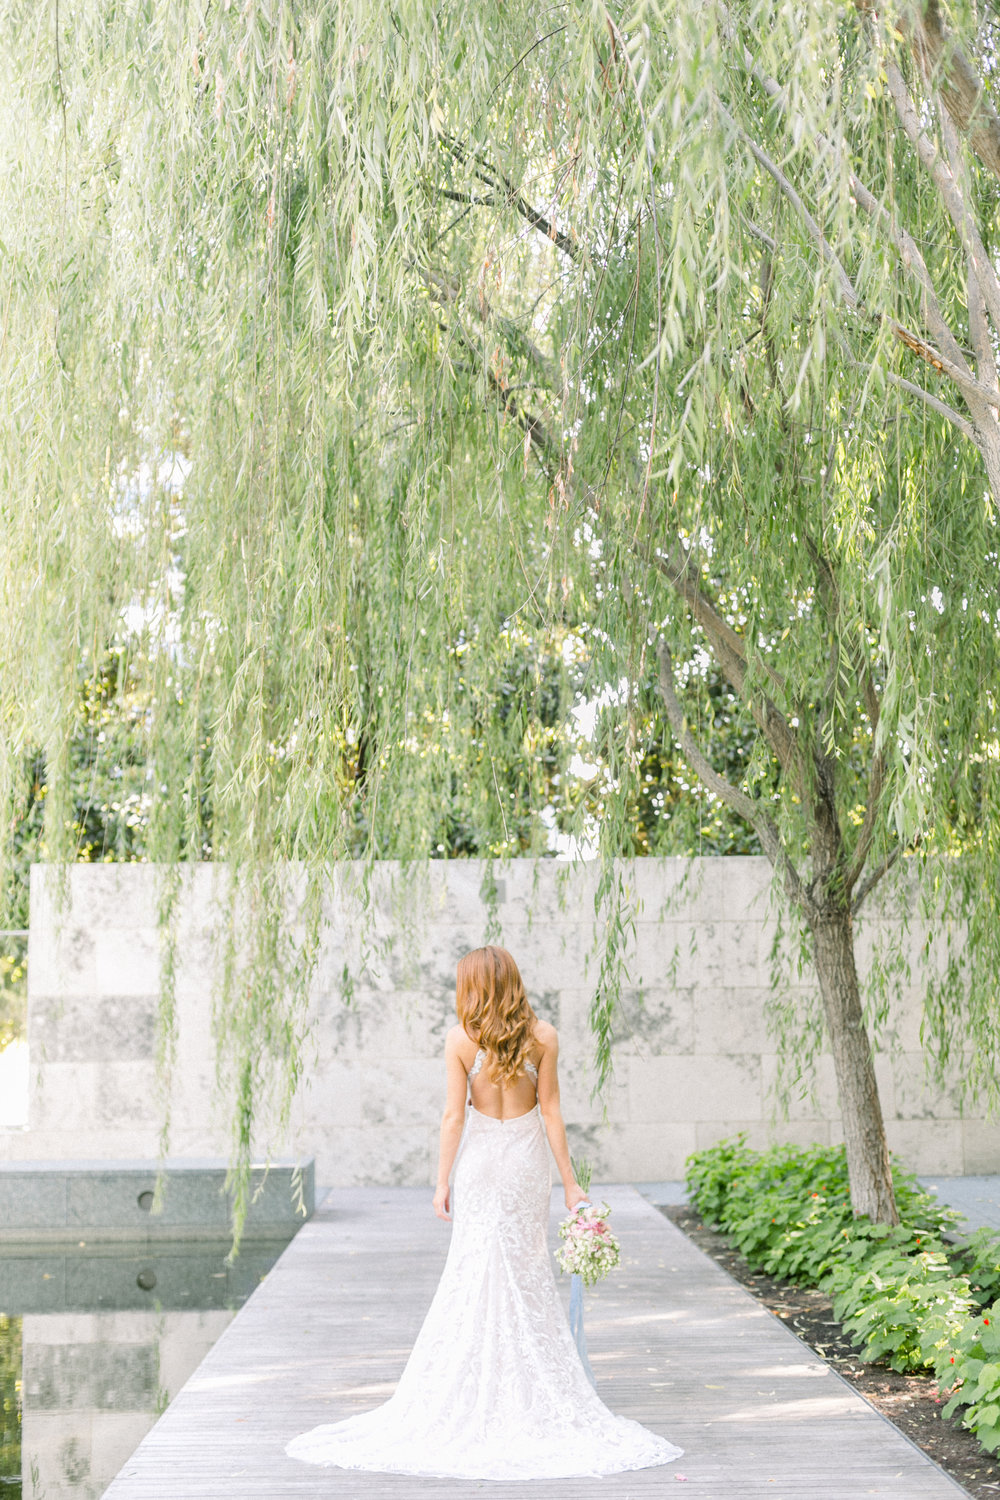 BRIDAL PORTRAIT AT NASHER SCULPTURE CENTER IN DOWNTOWN DALLAS, TEXAS BY ABBIE MAE PHOTOGRAPHY